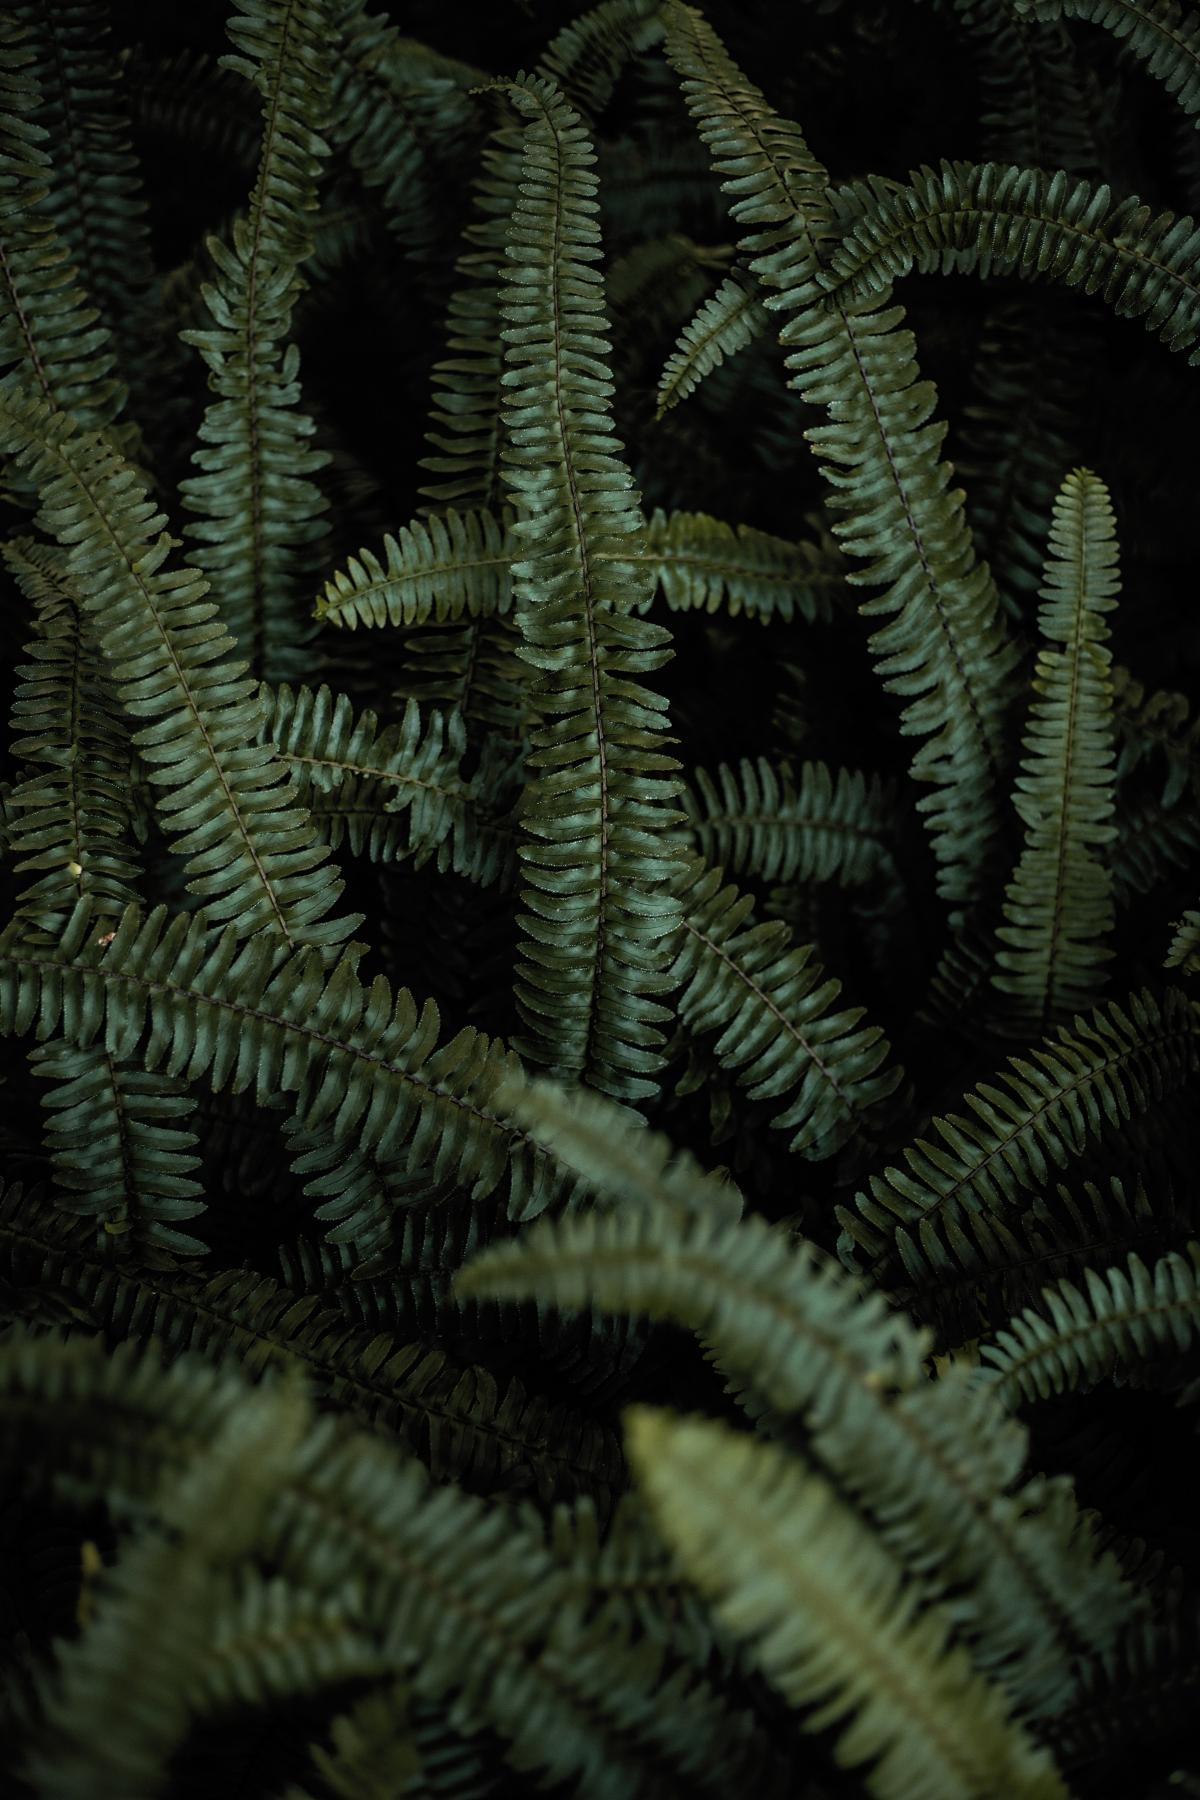 Feather star Echinoderm Fern